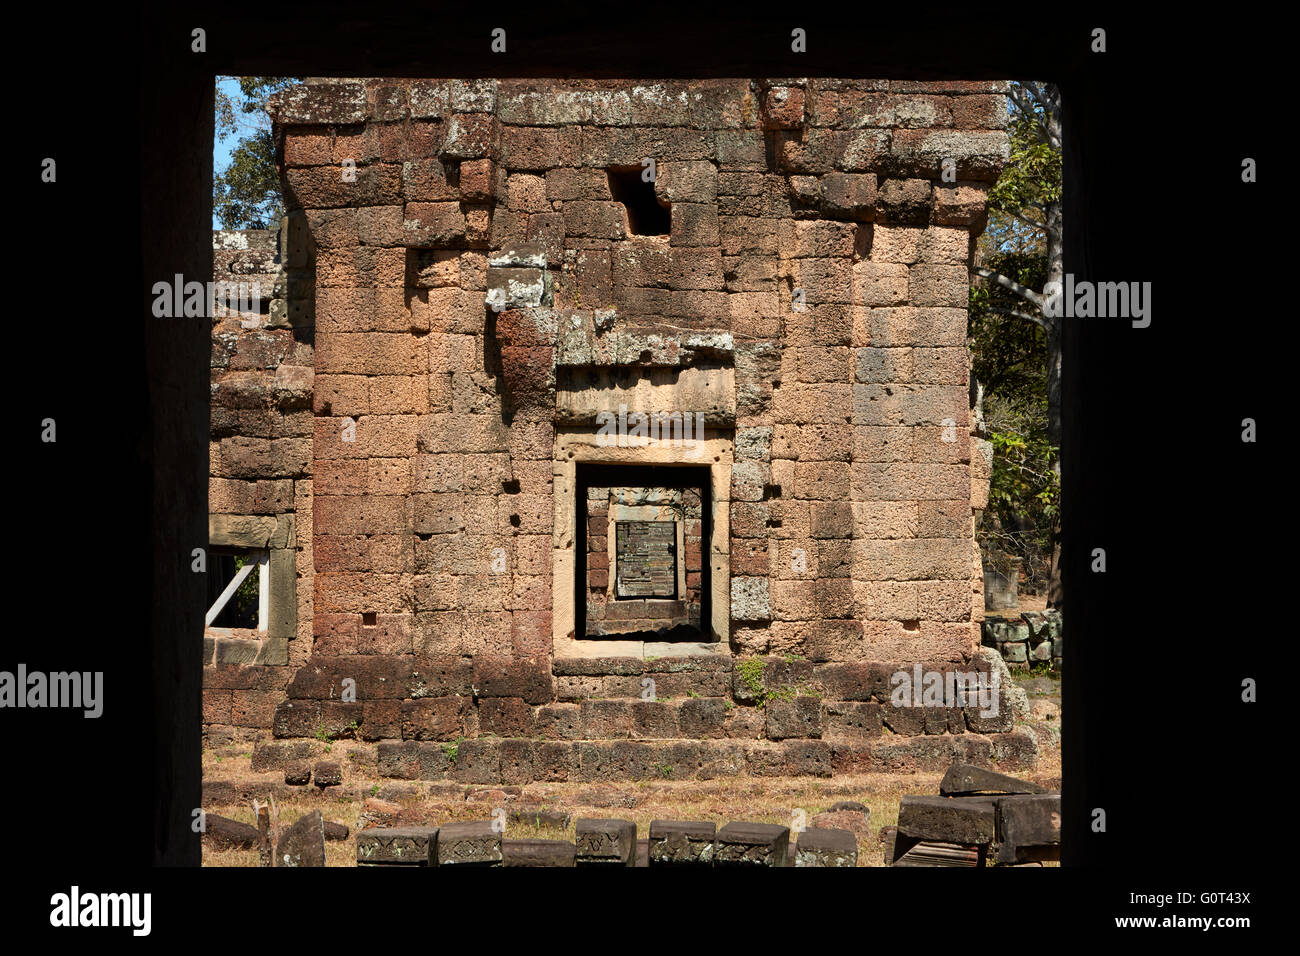 Suor Prat towers, Angkor Thom (12th century temple complex), Angkor World Heritage Site, Siem Reap, Cambodia - Stock Image